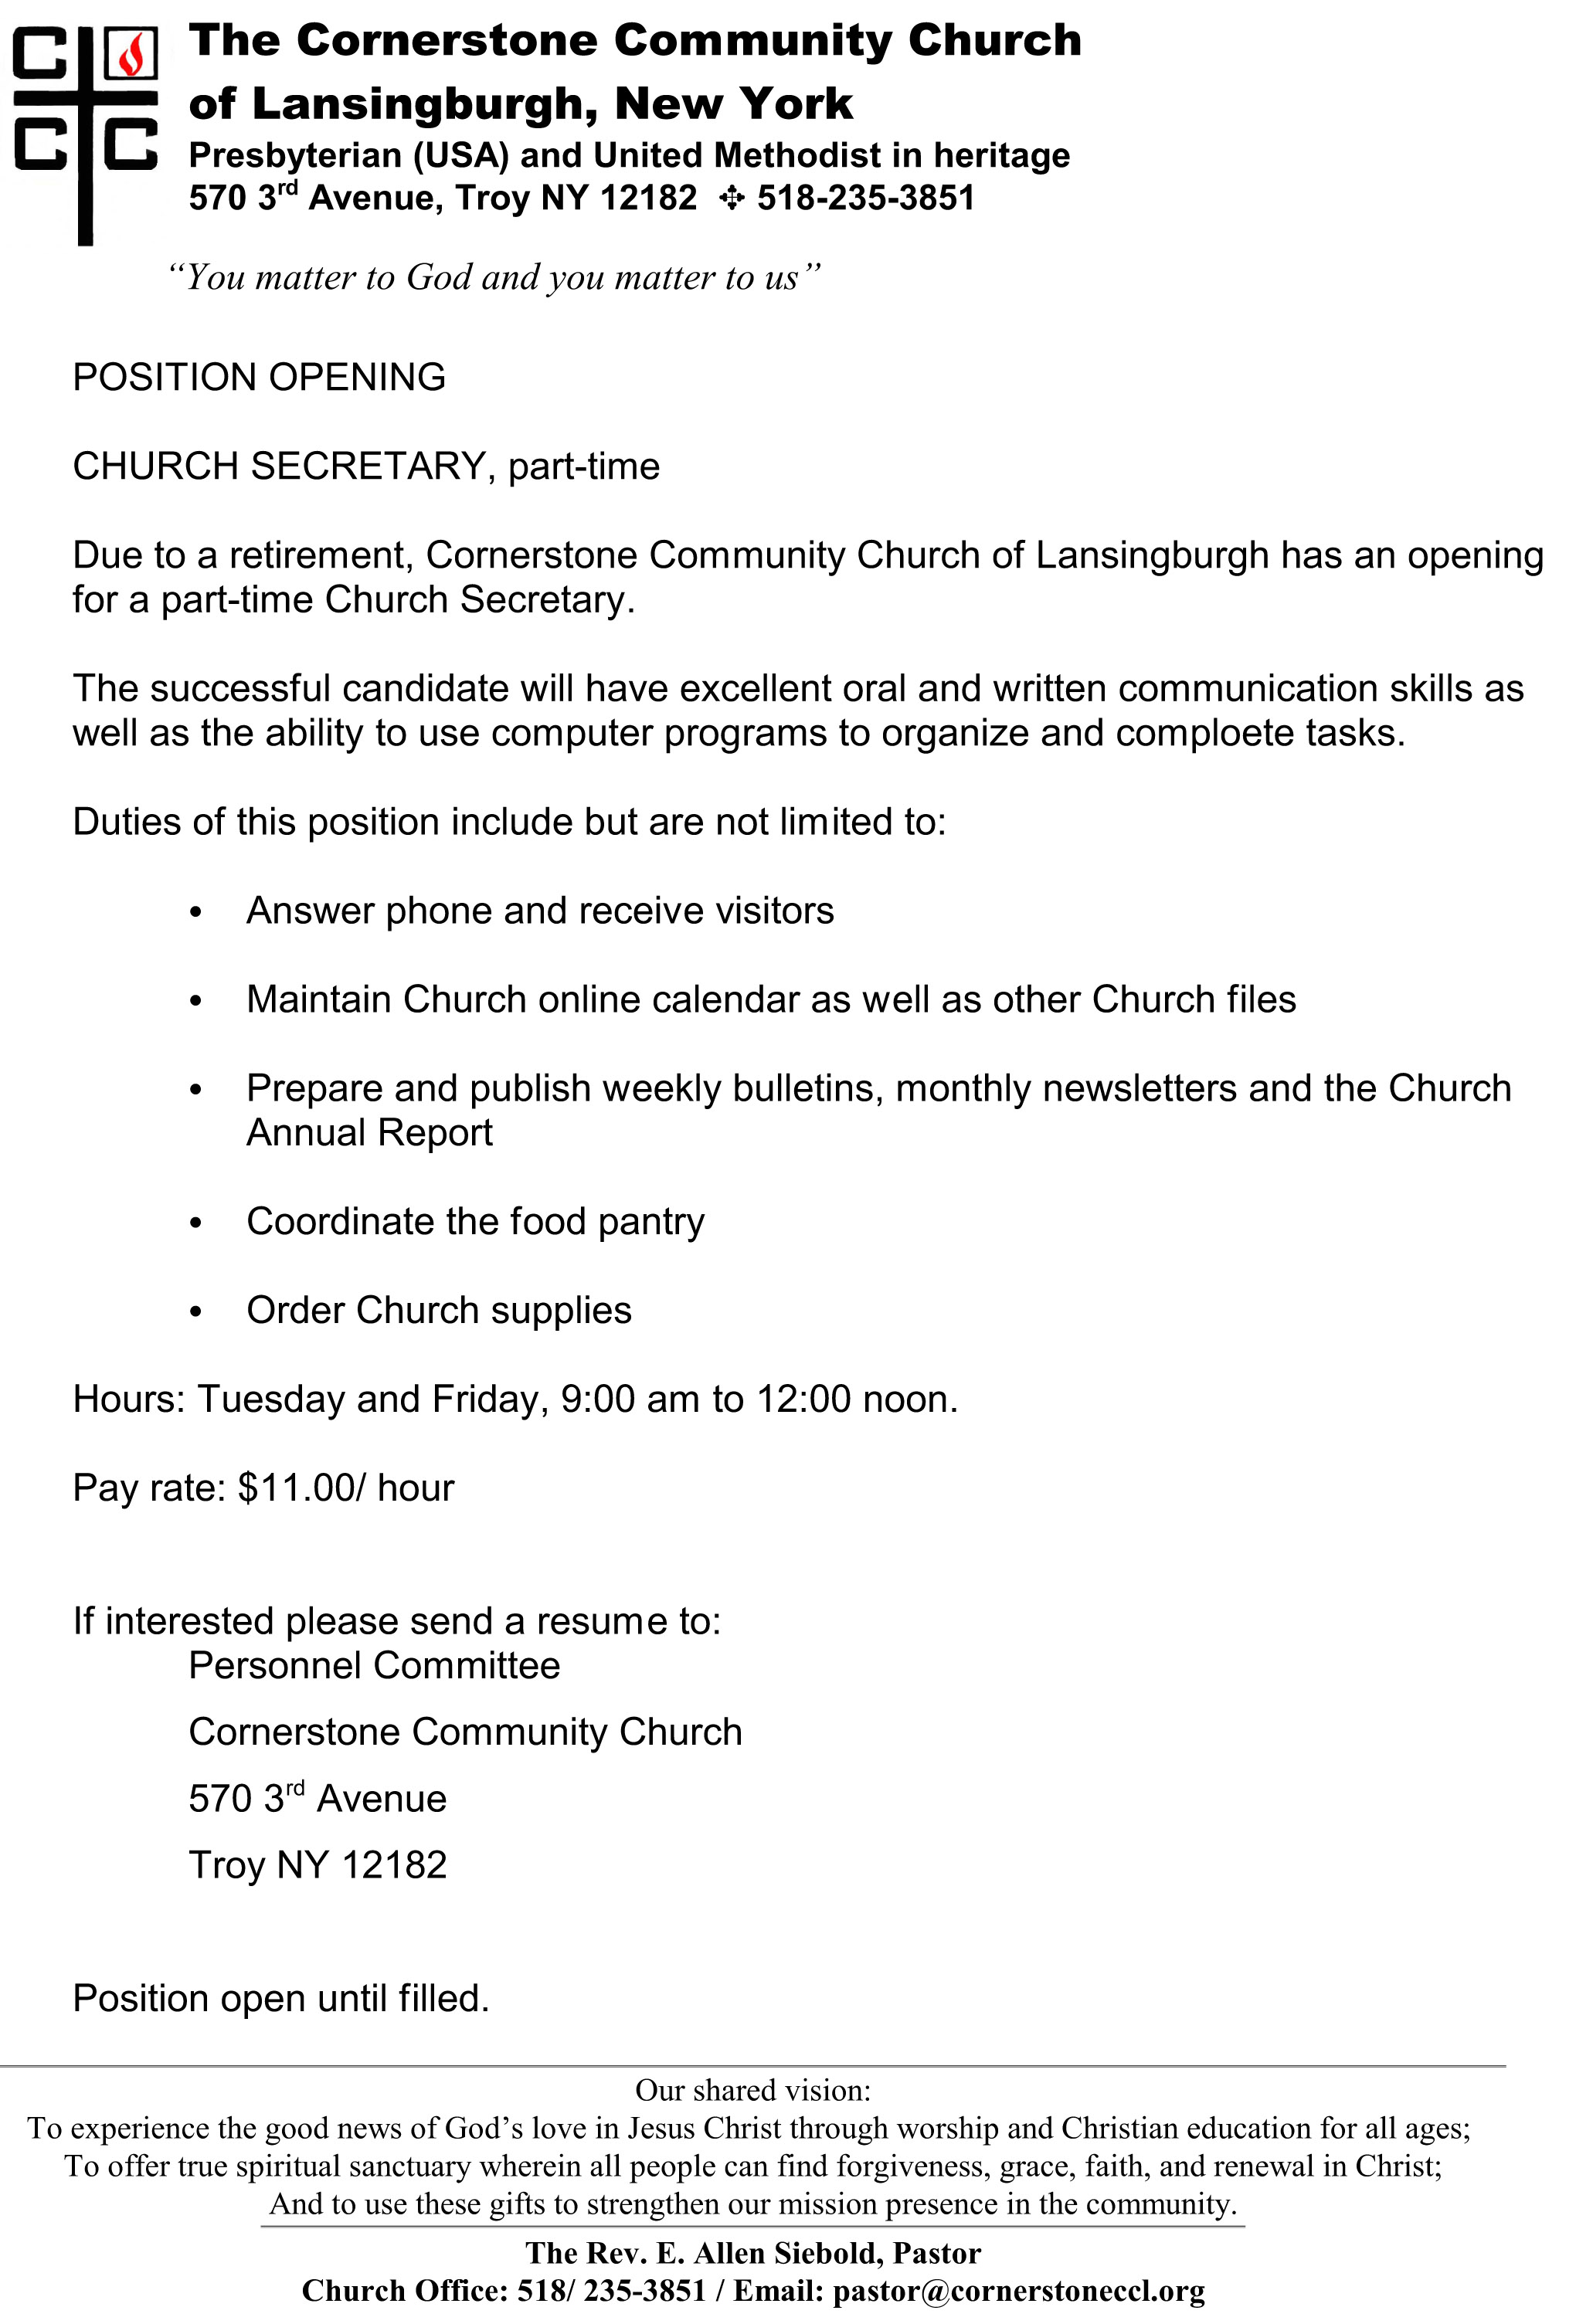 Position Opening-Church Secretary part-time